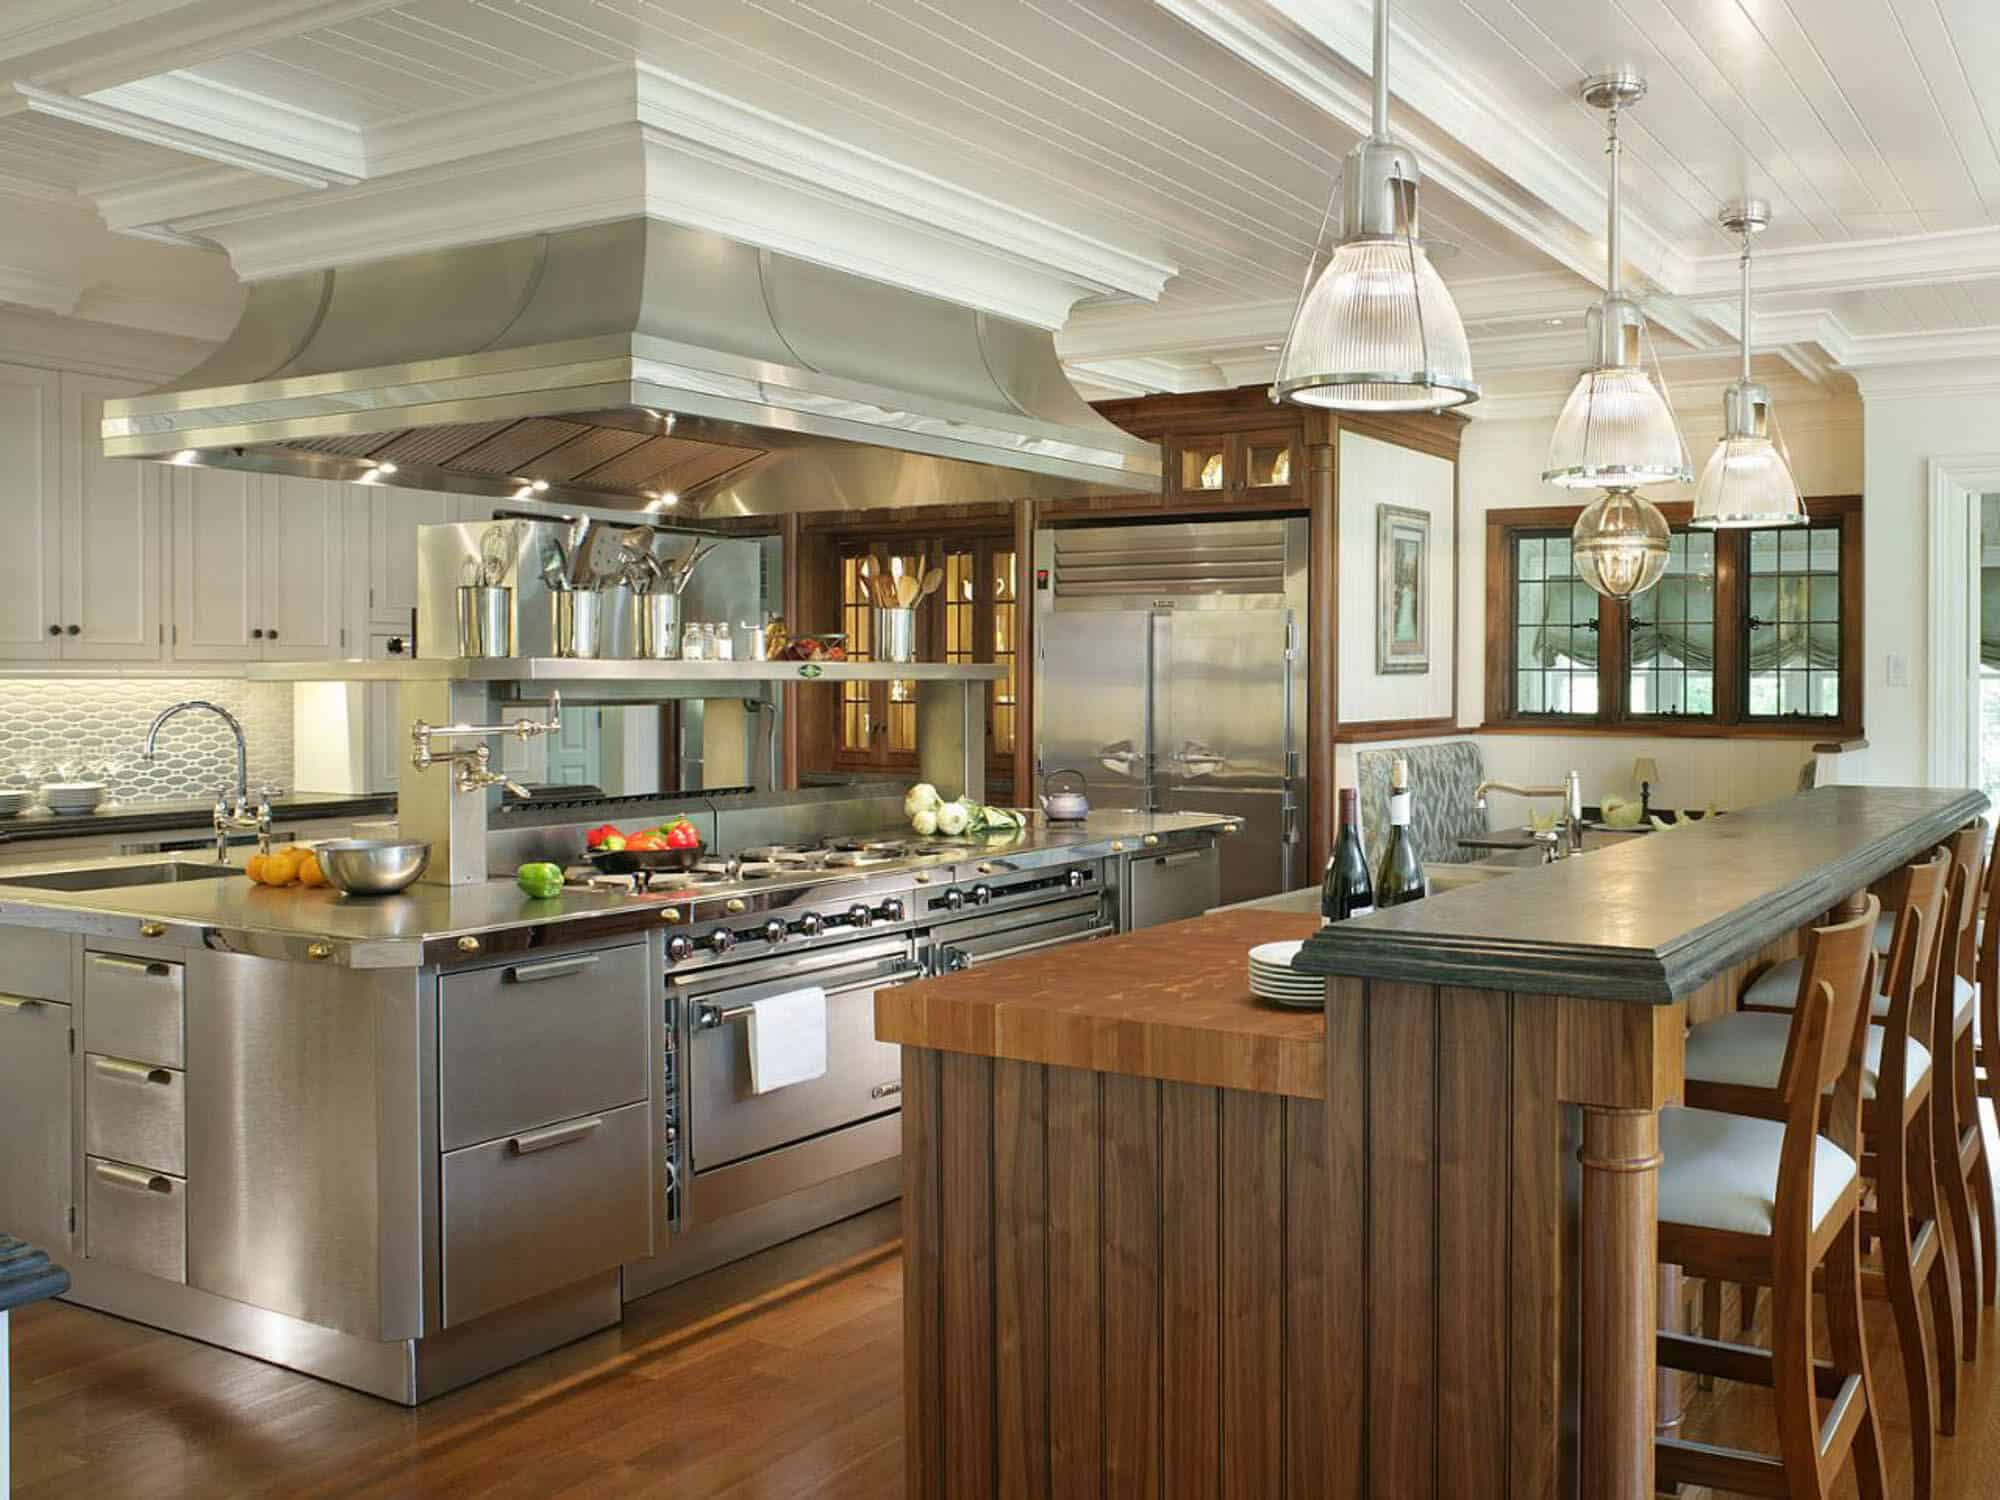 kitchen design and renovating ideas — gentleman's gazette